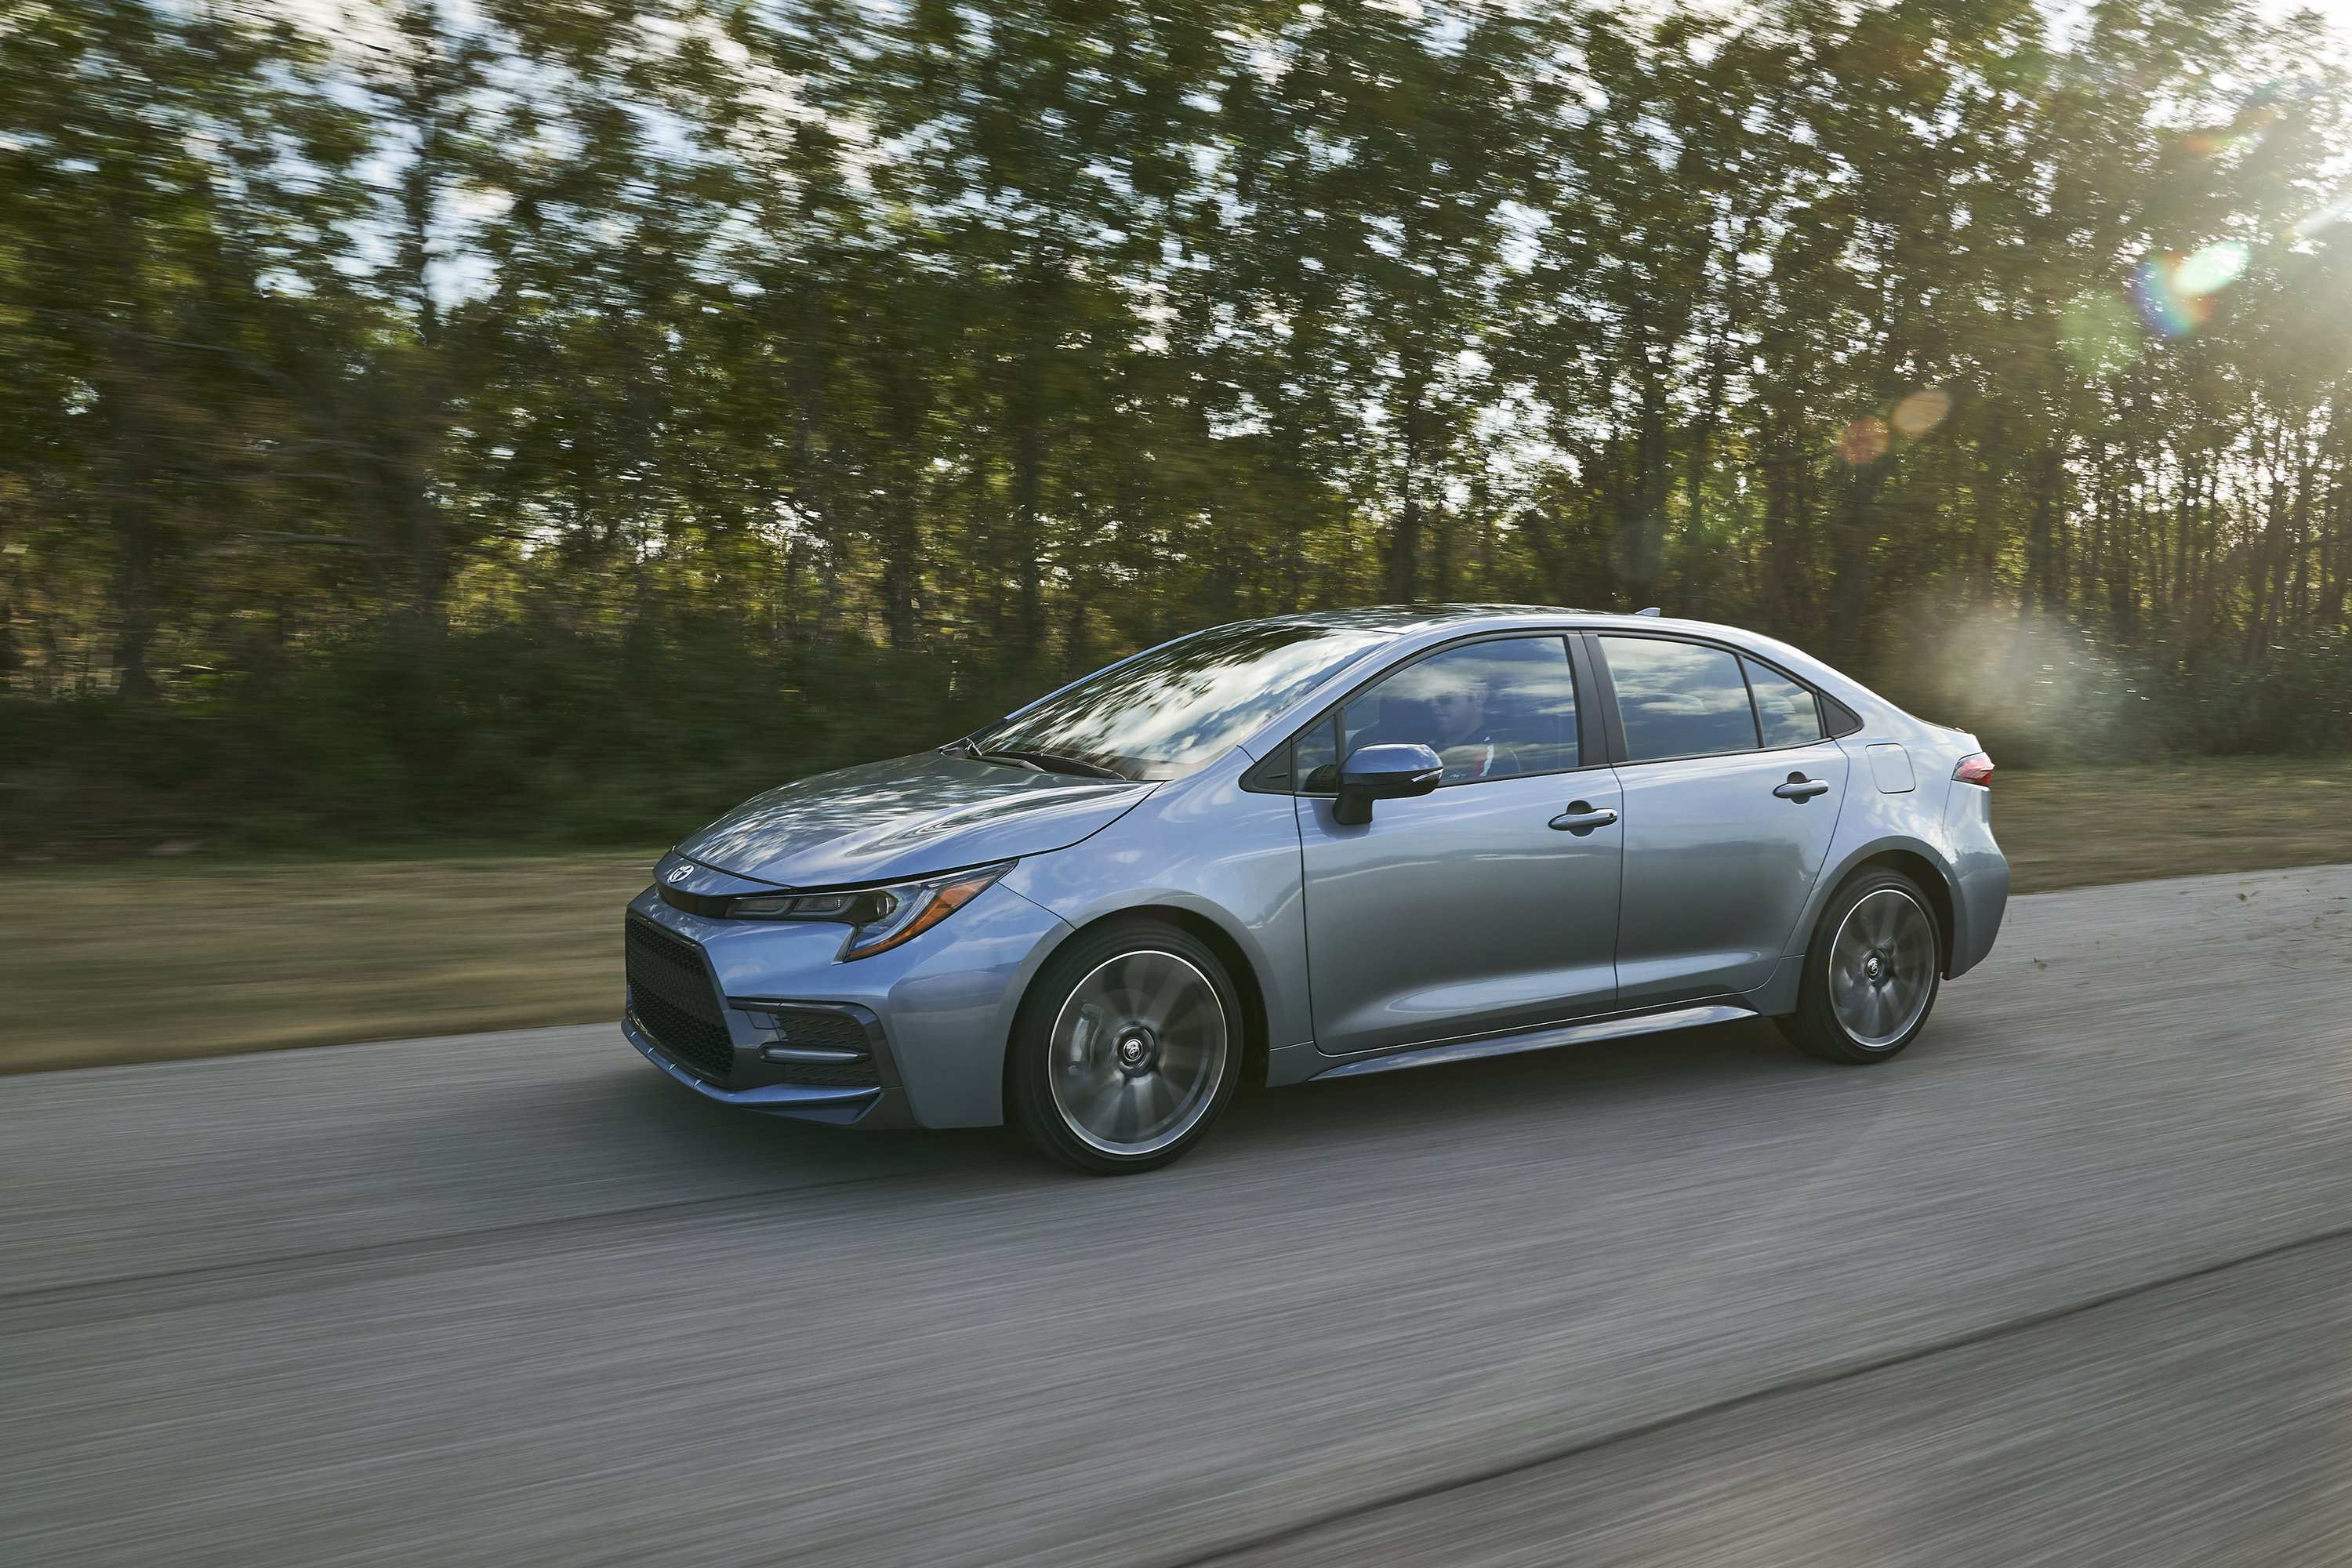 22 Best Toyota Avensis 2020 Overview